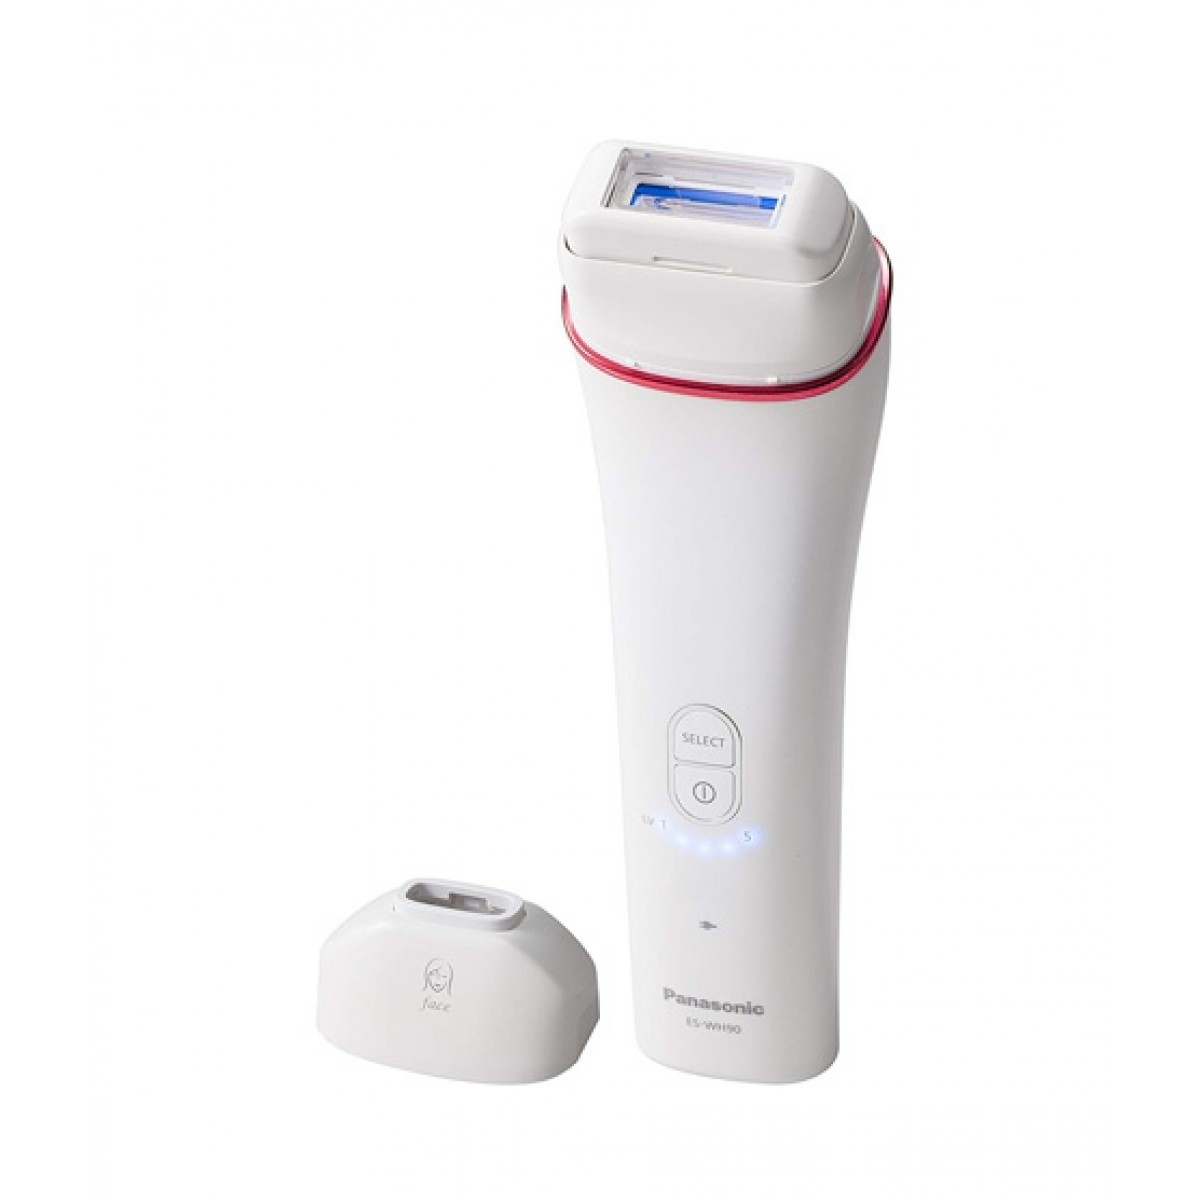 Panasonic Ipl Hair Removal System Price In Pakistan Buy